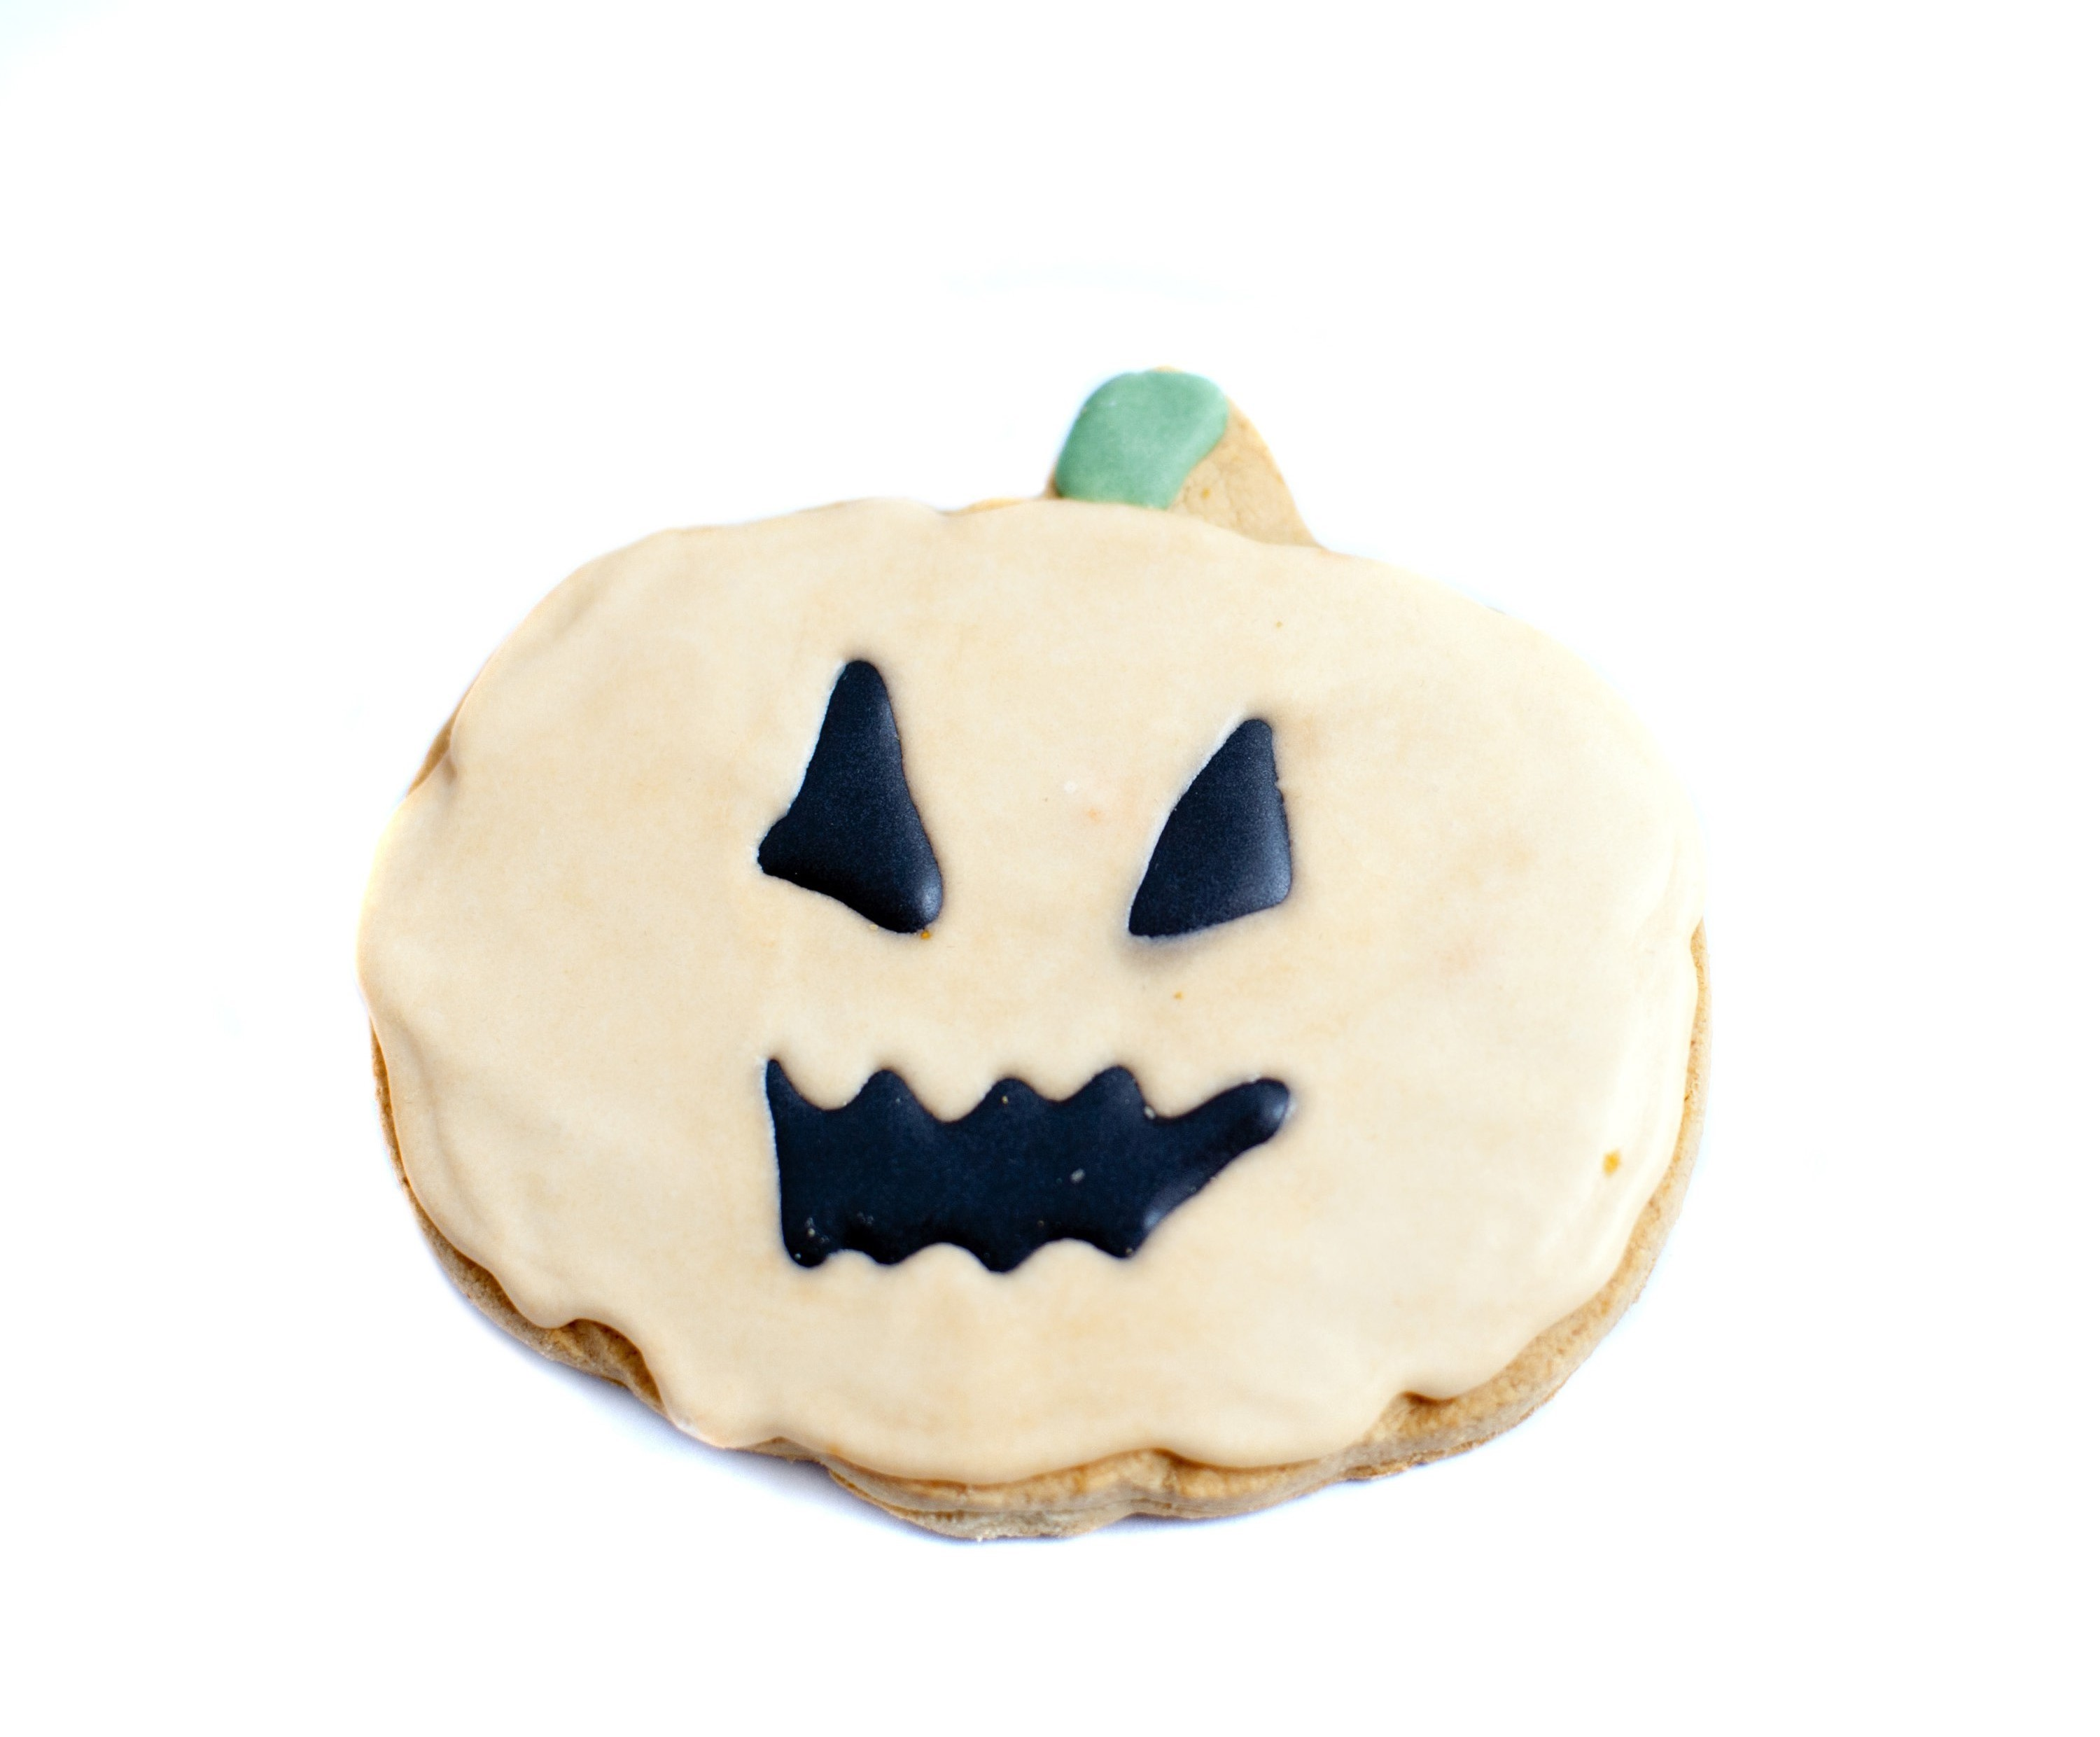 sweet treat for halloween a icing decorated pumpkin shaped biscuit